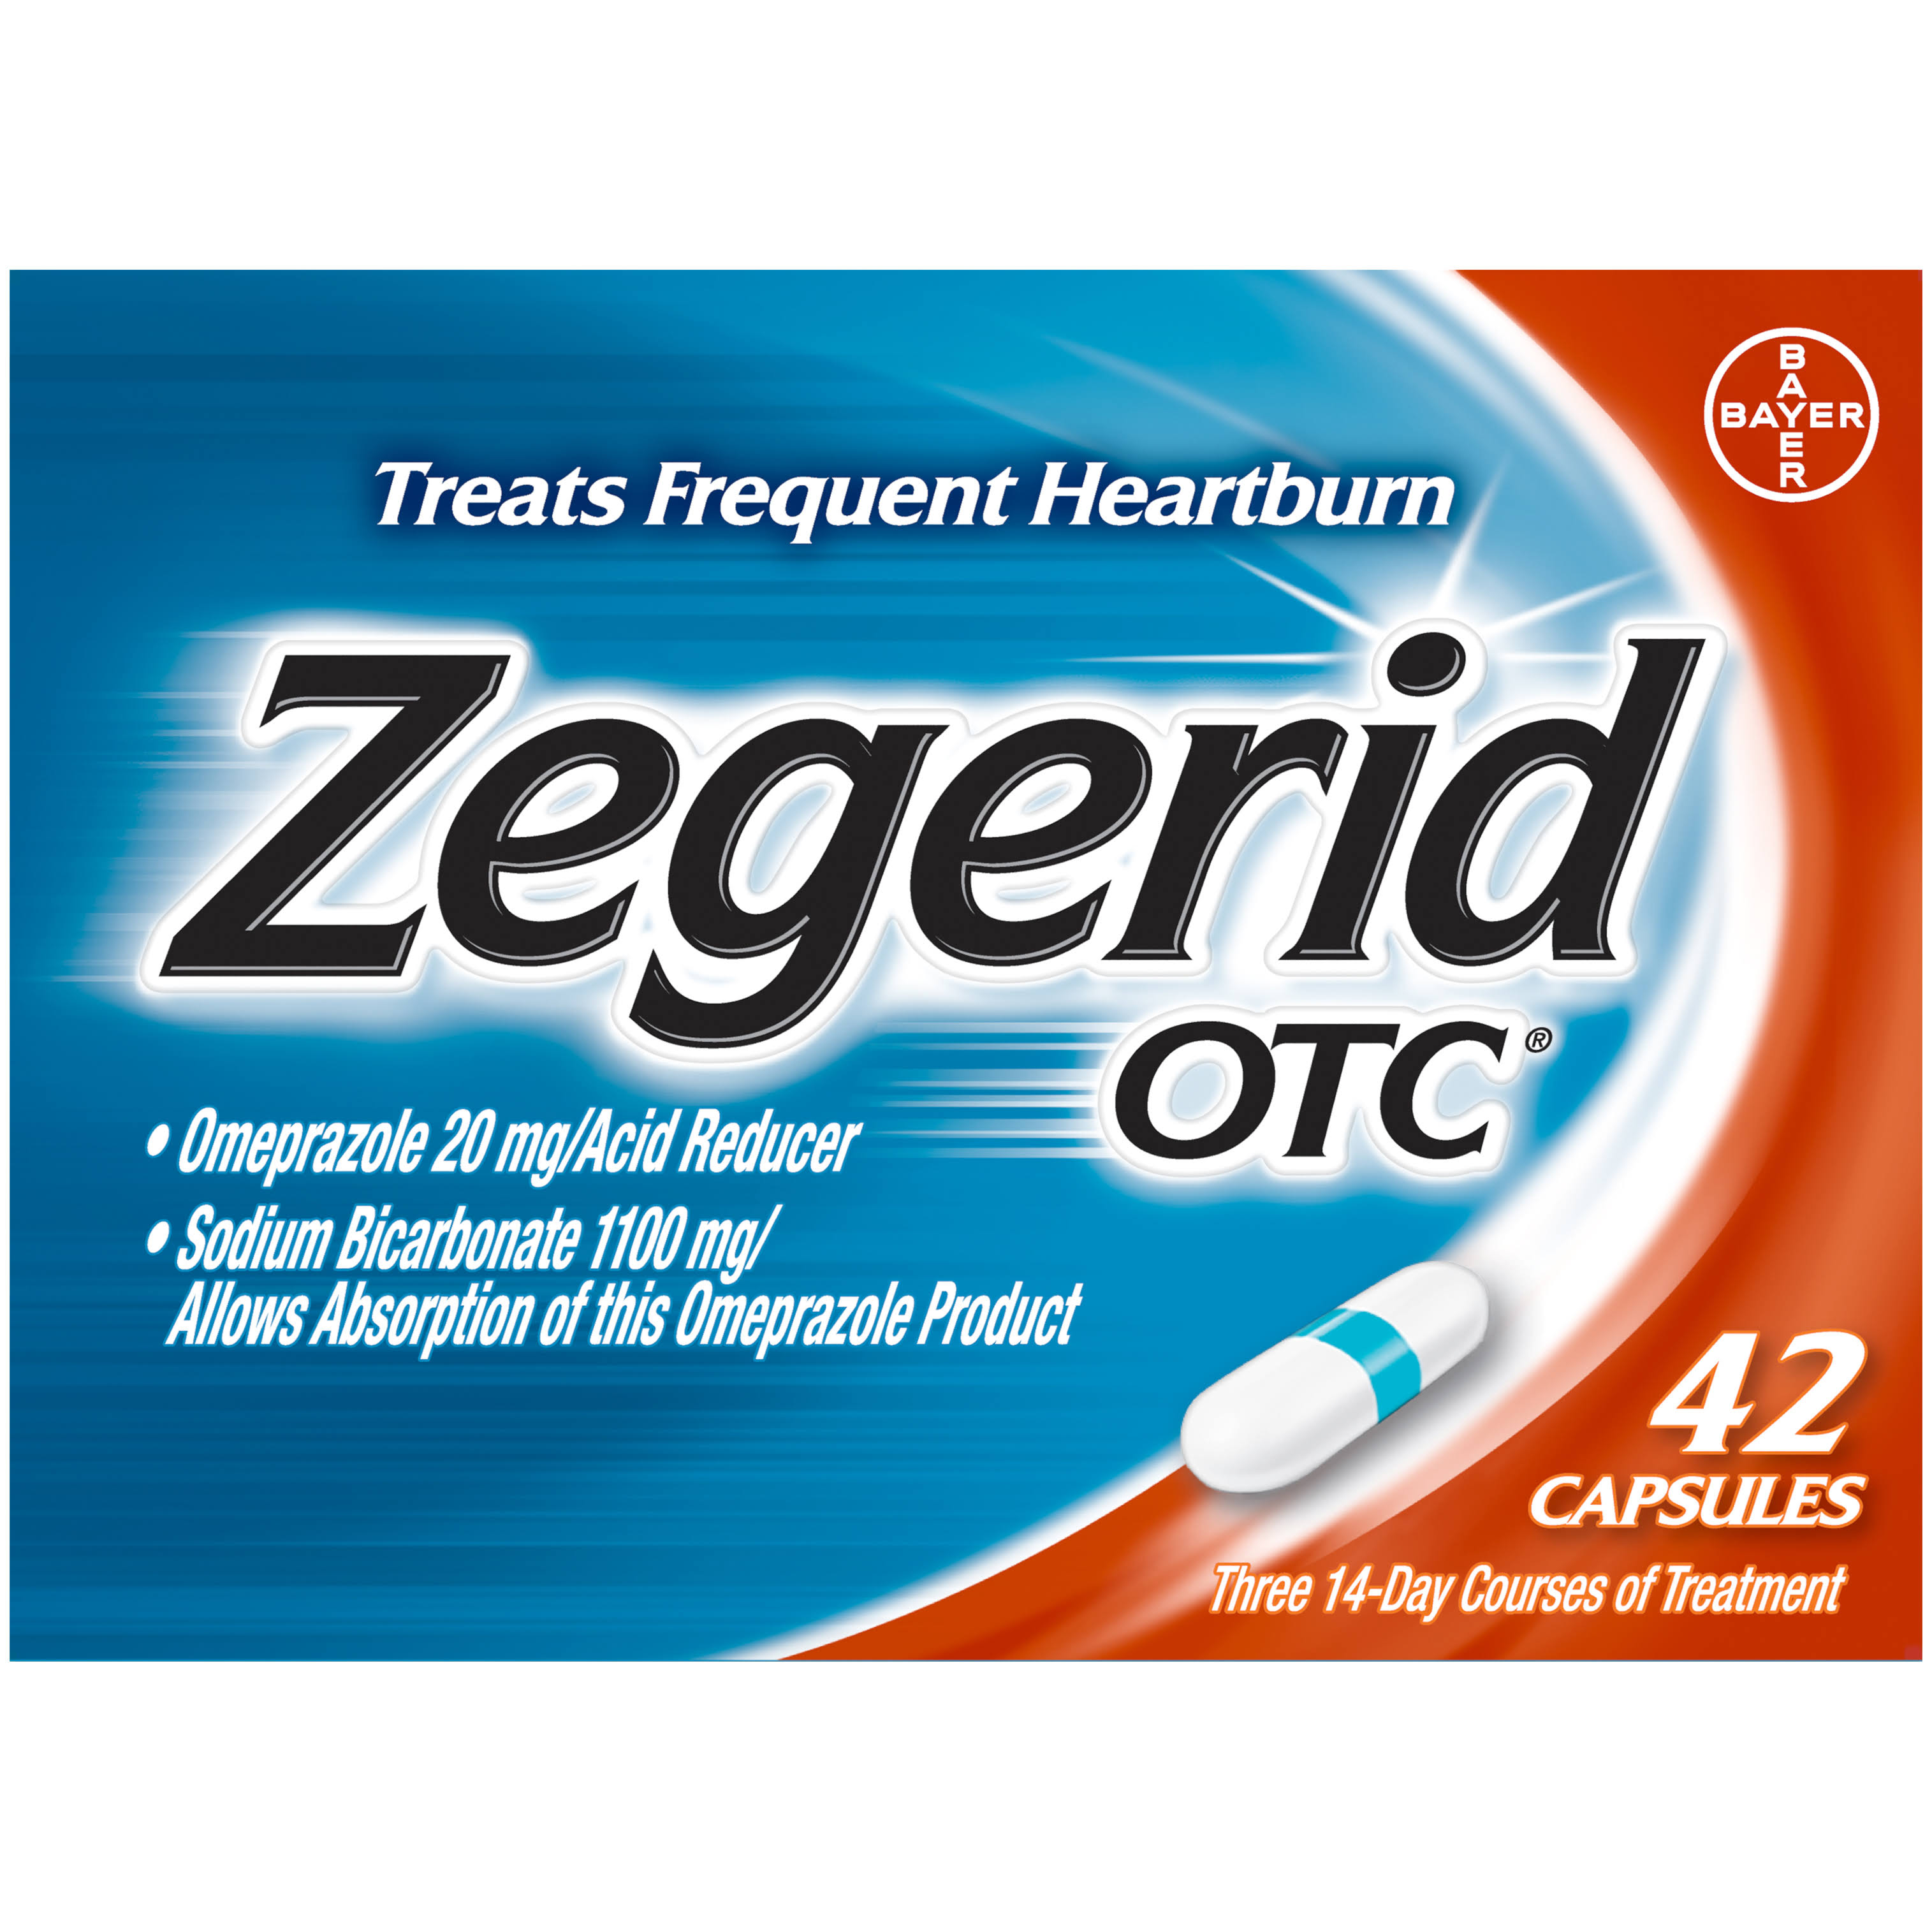 Zegerid OTC Treat Frequent Heartburn - 42 Capsules